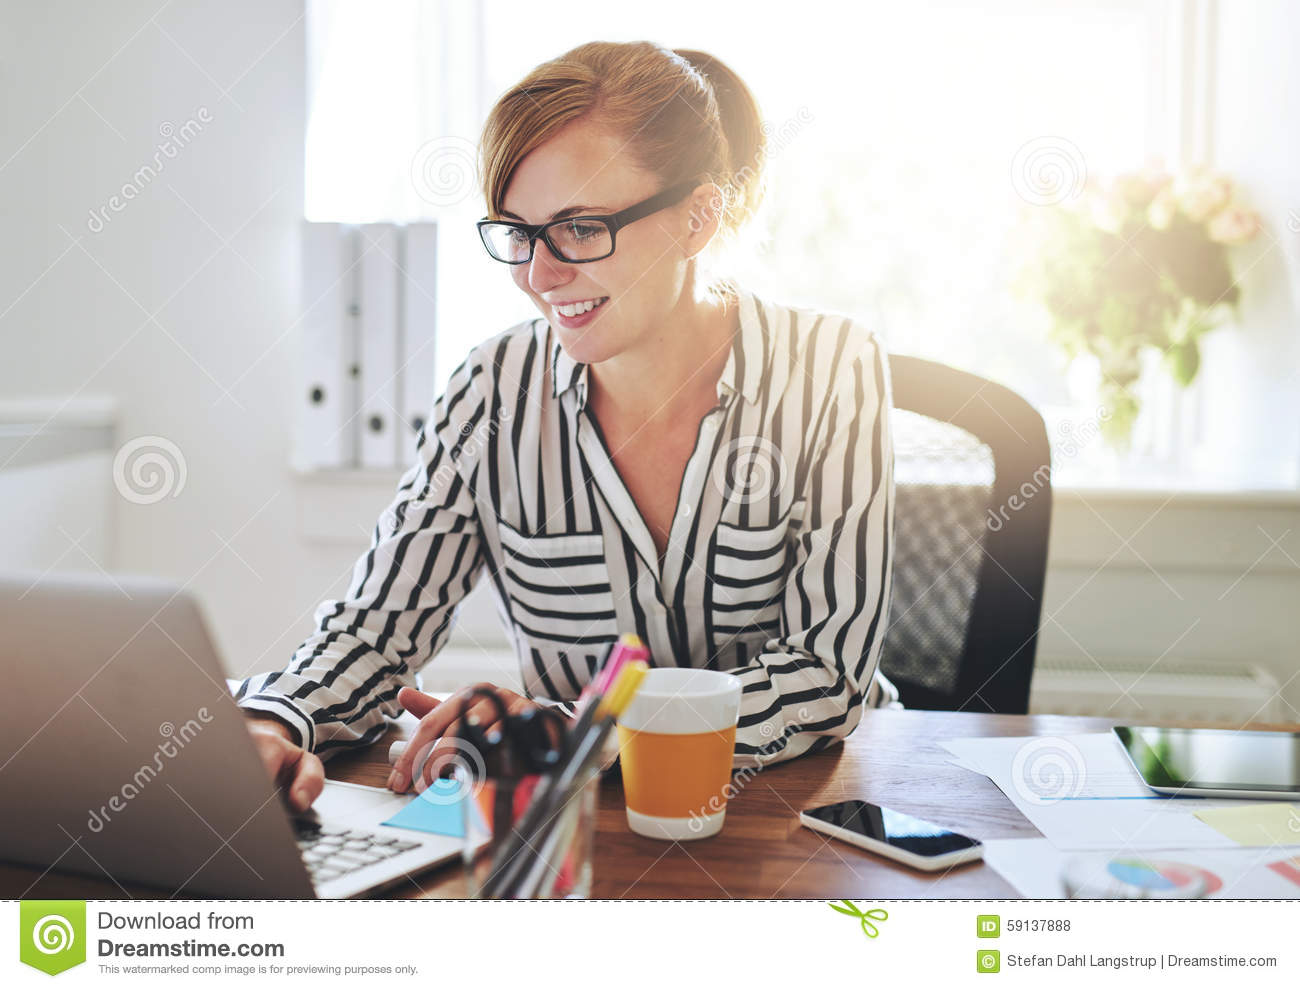 surfing the internet on company time Once installed and set up according to the company's particular internet  hr can establish 30 minutes of personal surfing time  employee internet management.